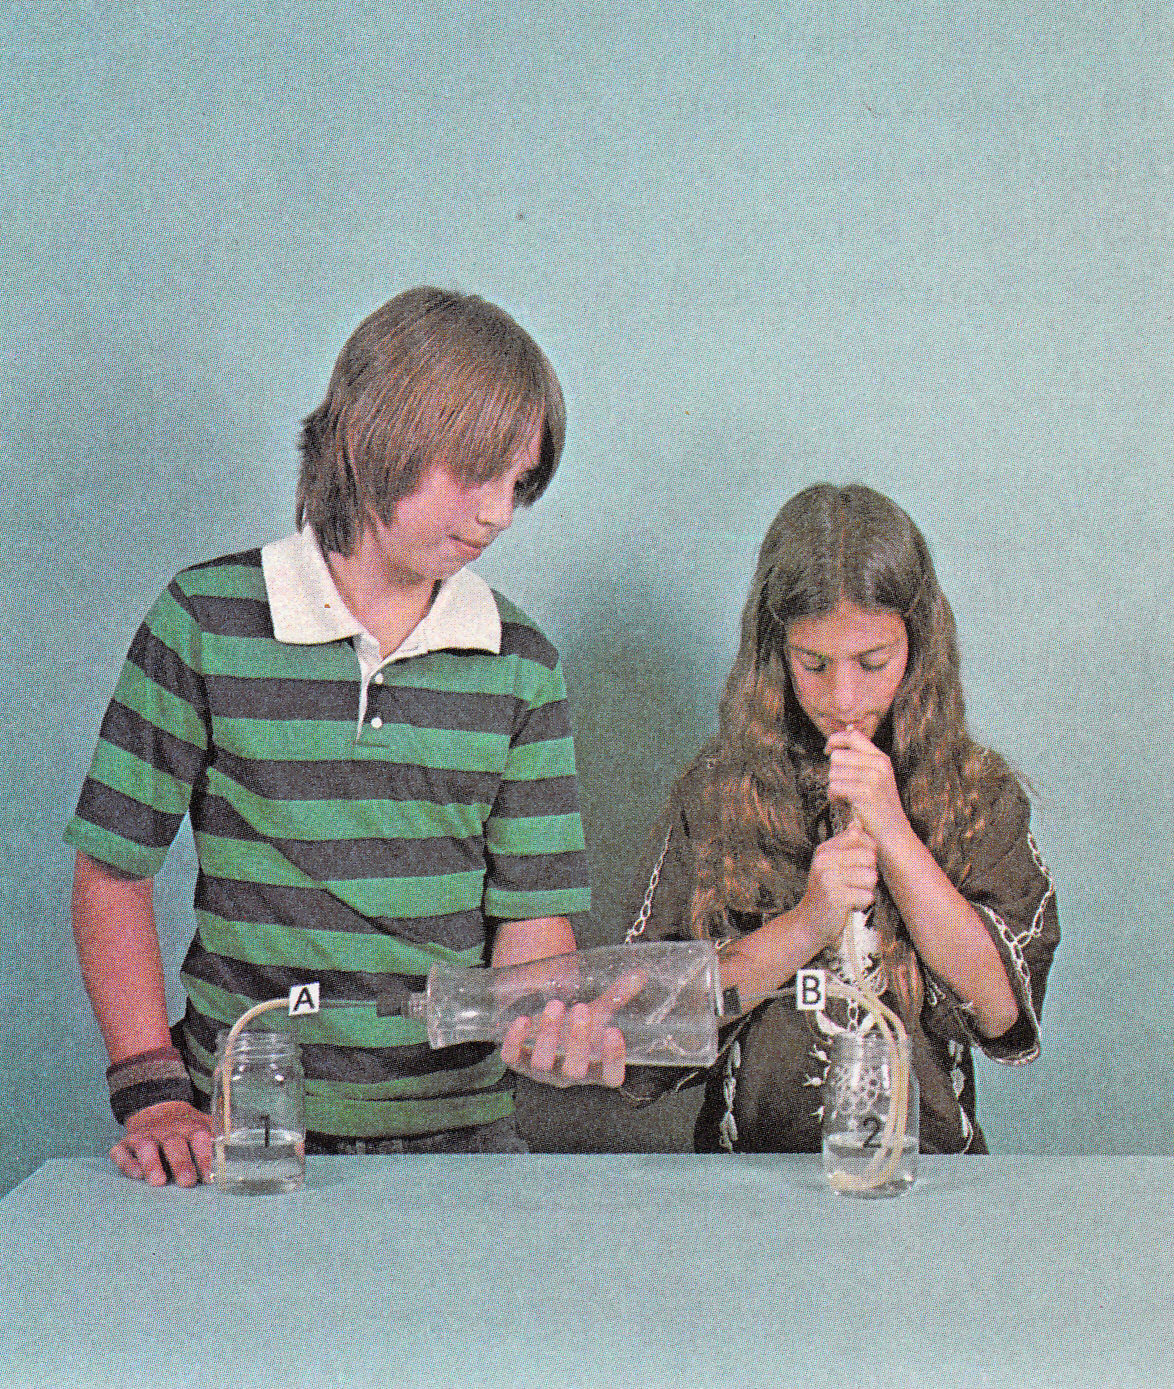 1977-science-textbook_0010_4673764444_o